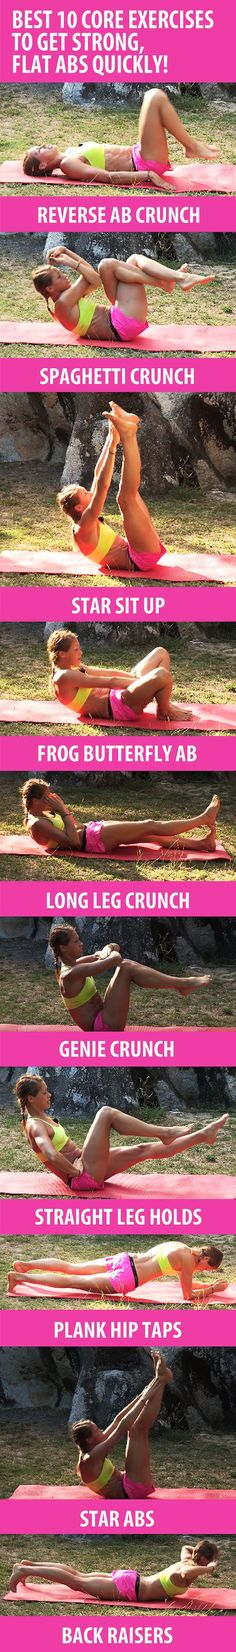 These 10 core exercises will help you sculpt six-pack abs, build core strength, and get rid of belly fat quickly. Recommended reps: BEGINNERS 8-10, INTERMEDIATE 10-15, ADVANCED 20-30+ #abworkout #muffintop #flatbelly #flatstomach #workoutforwomen #upperabs #lowerabs #bellyfat